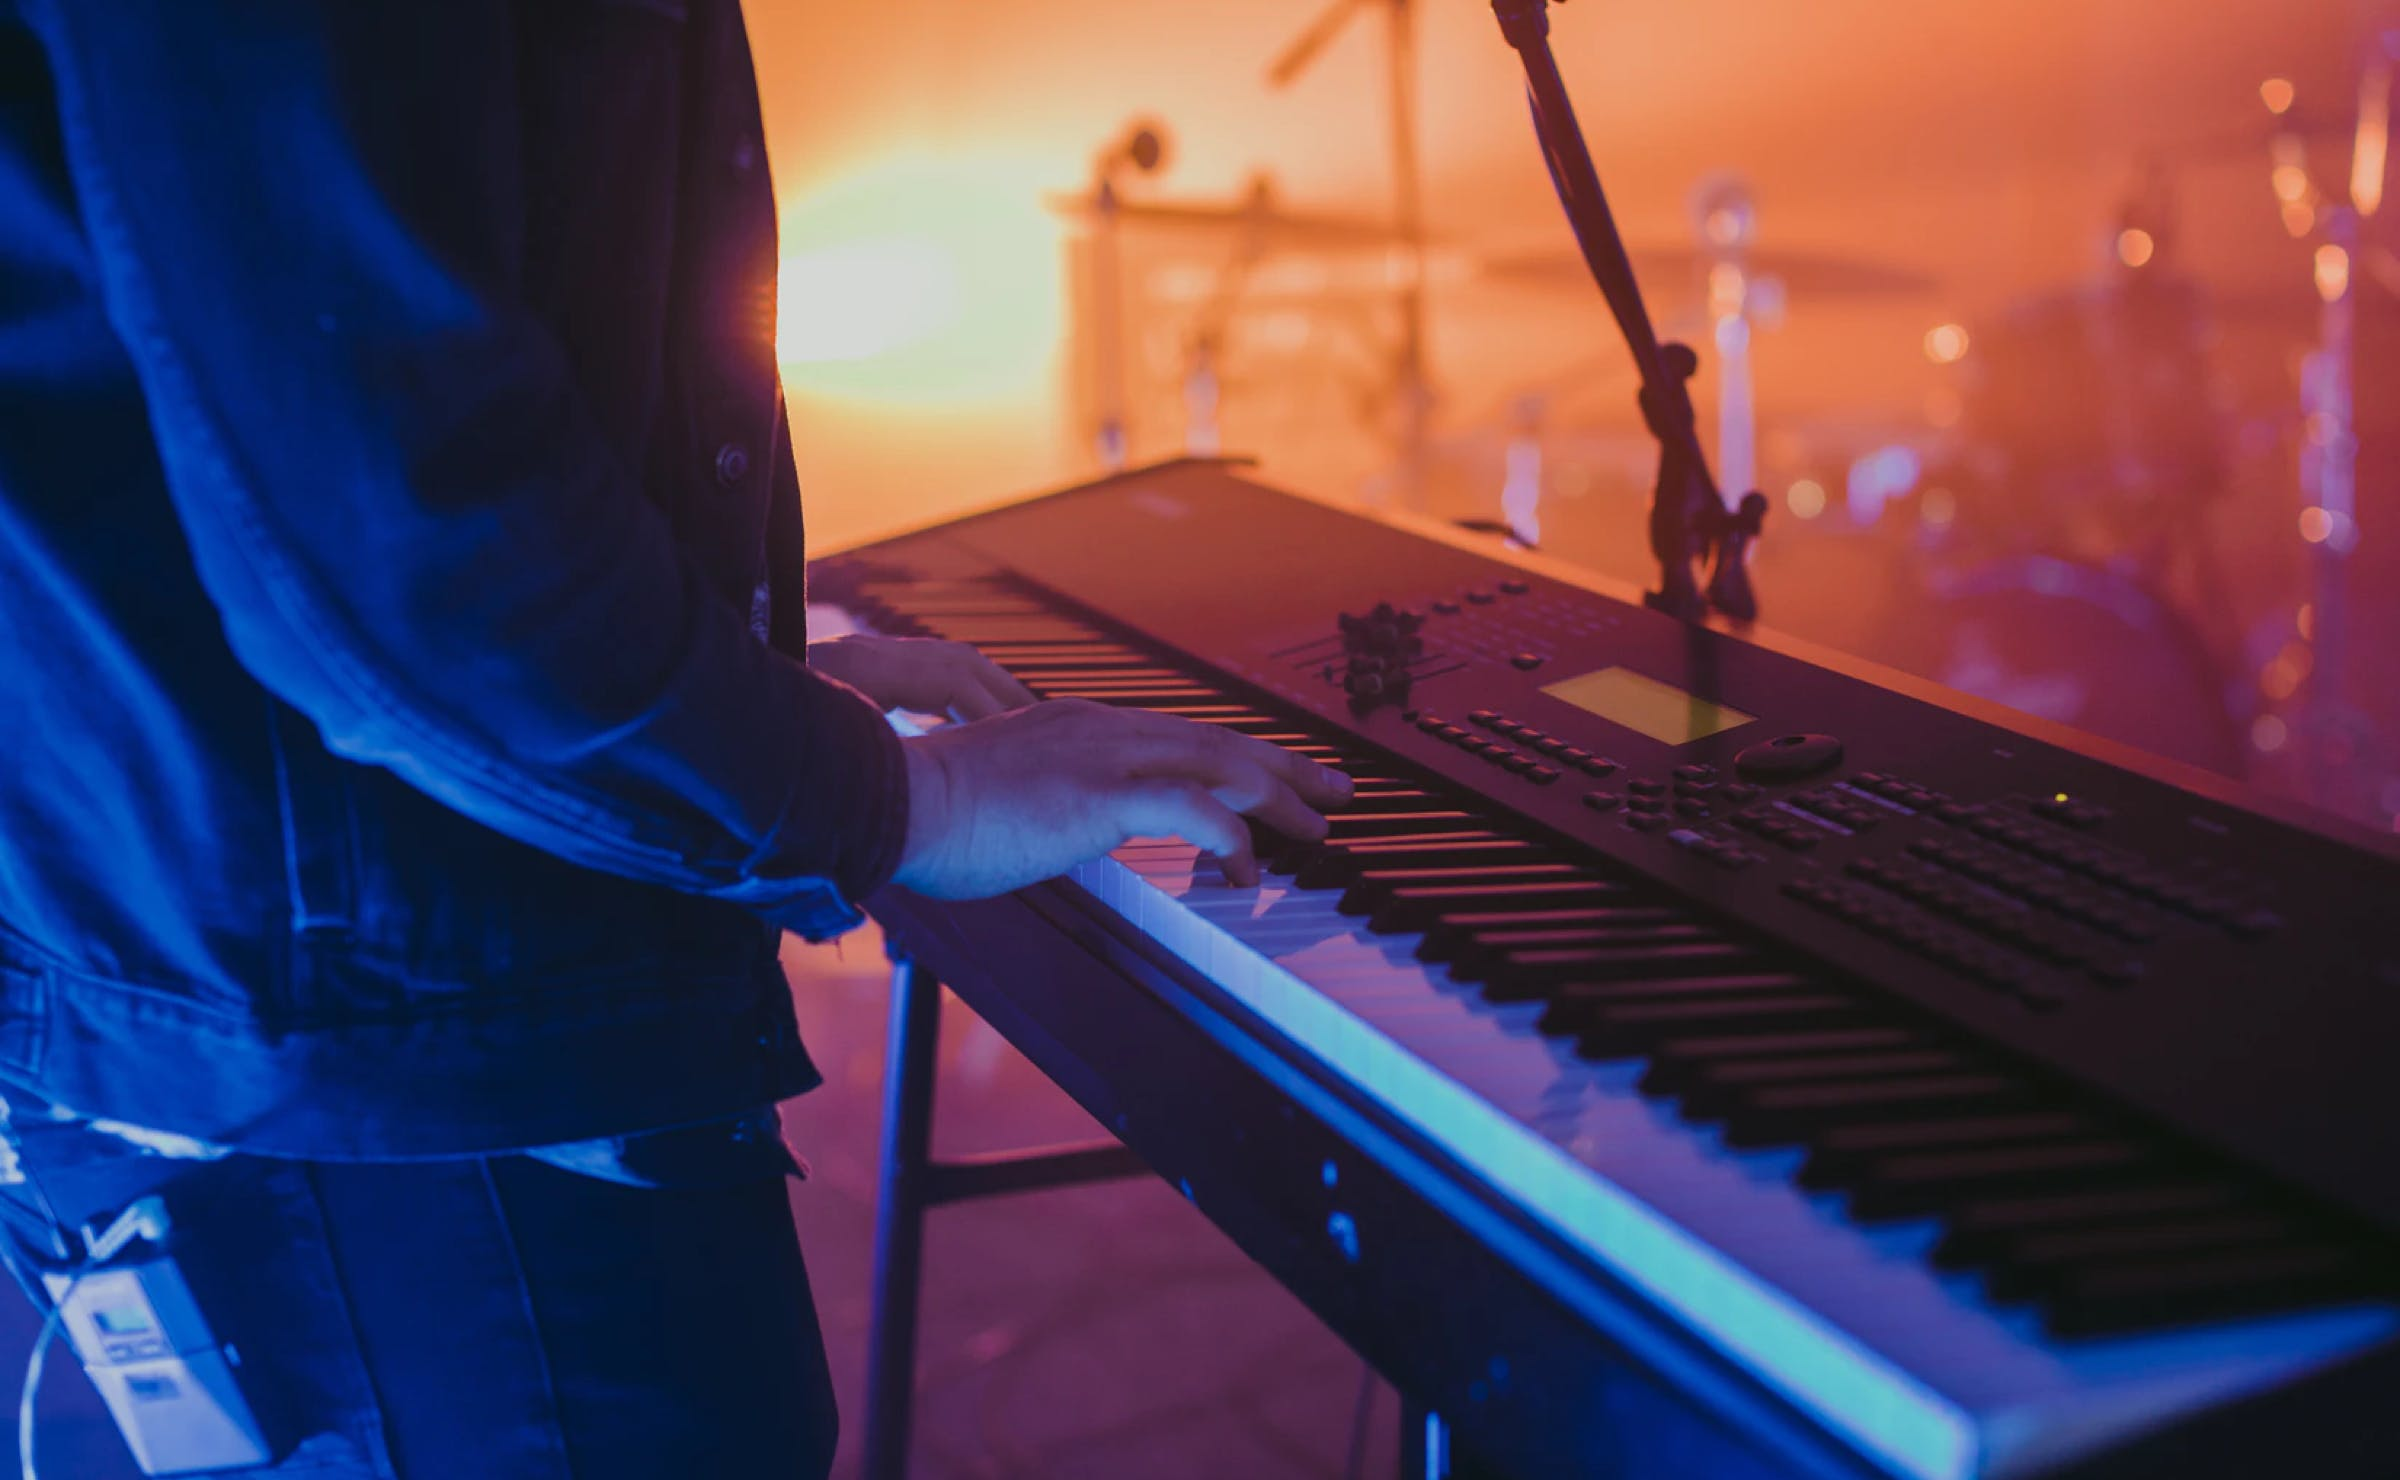 Keyboard player on a concert